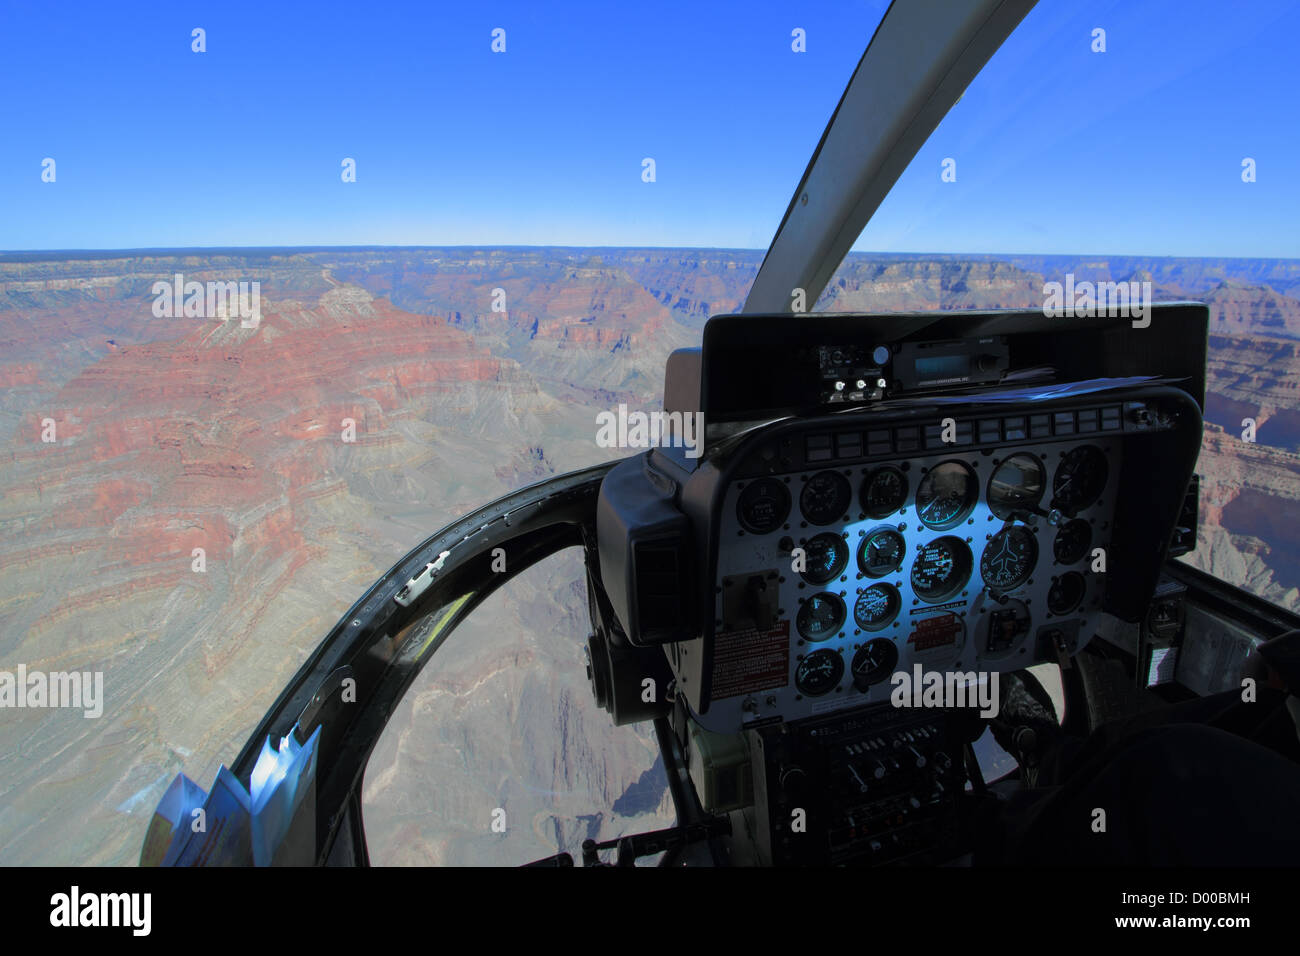 Experiencing the Grand Canyon from a helicopter. Grand Canyon, Arizona, USA - Stock Image